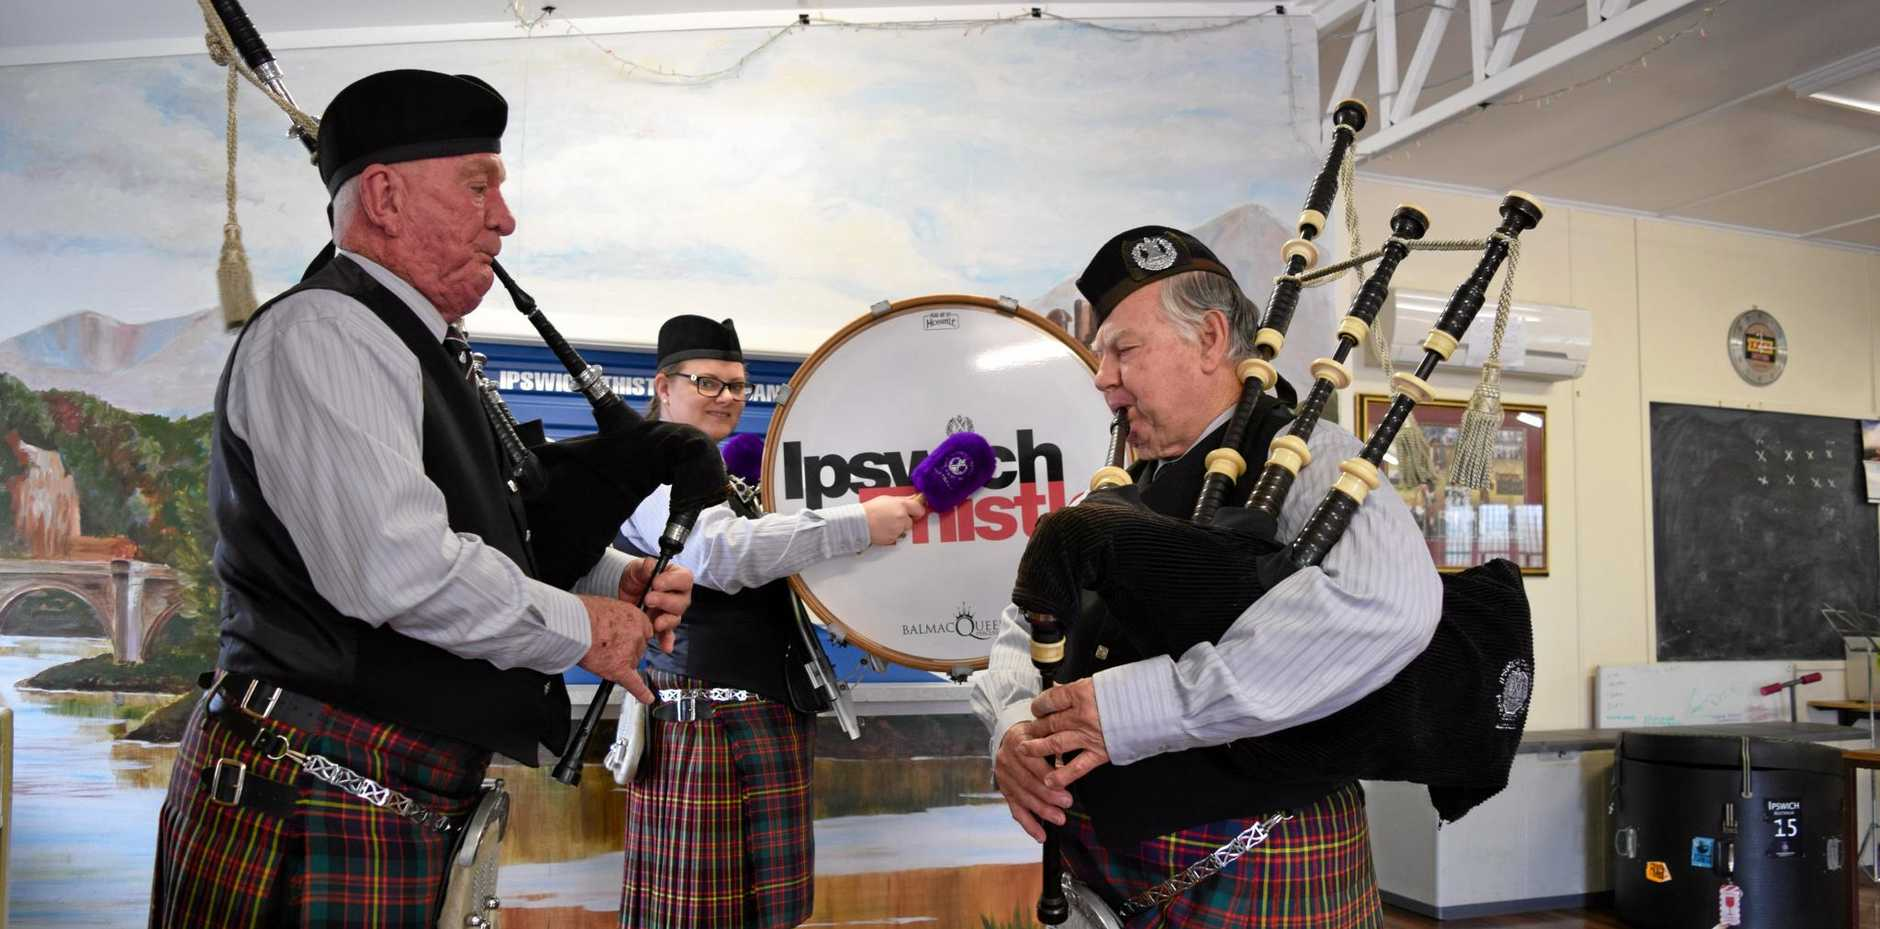 FINELY TUNED: Ipswich Thistle Pipe Band was judged best Street Marching Band at the Australian Championships.